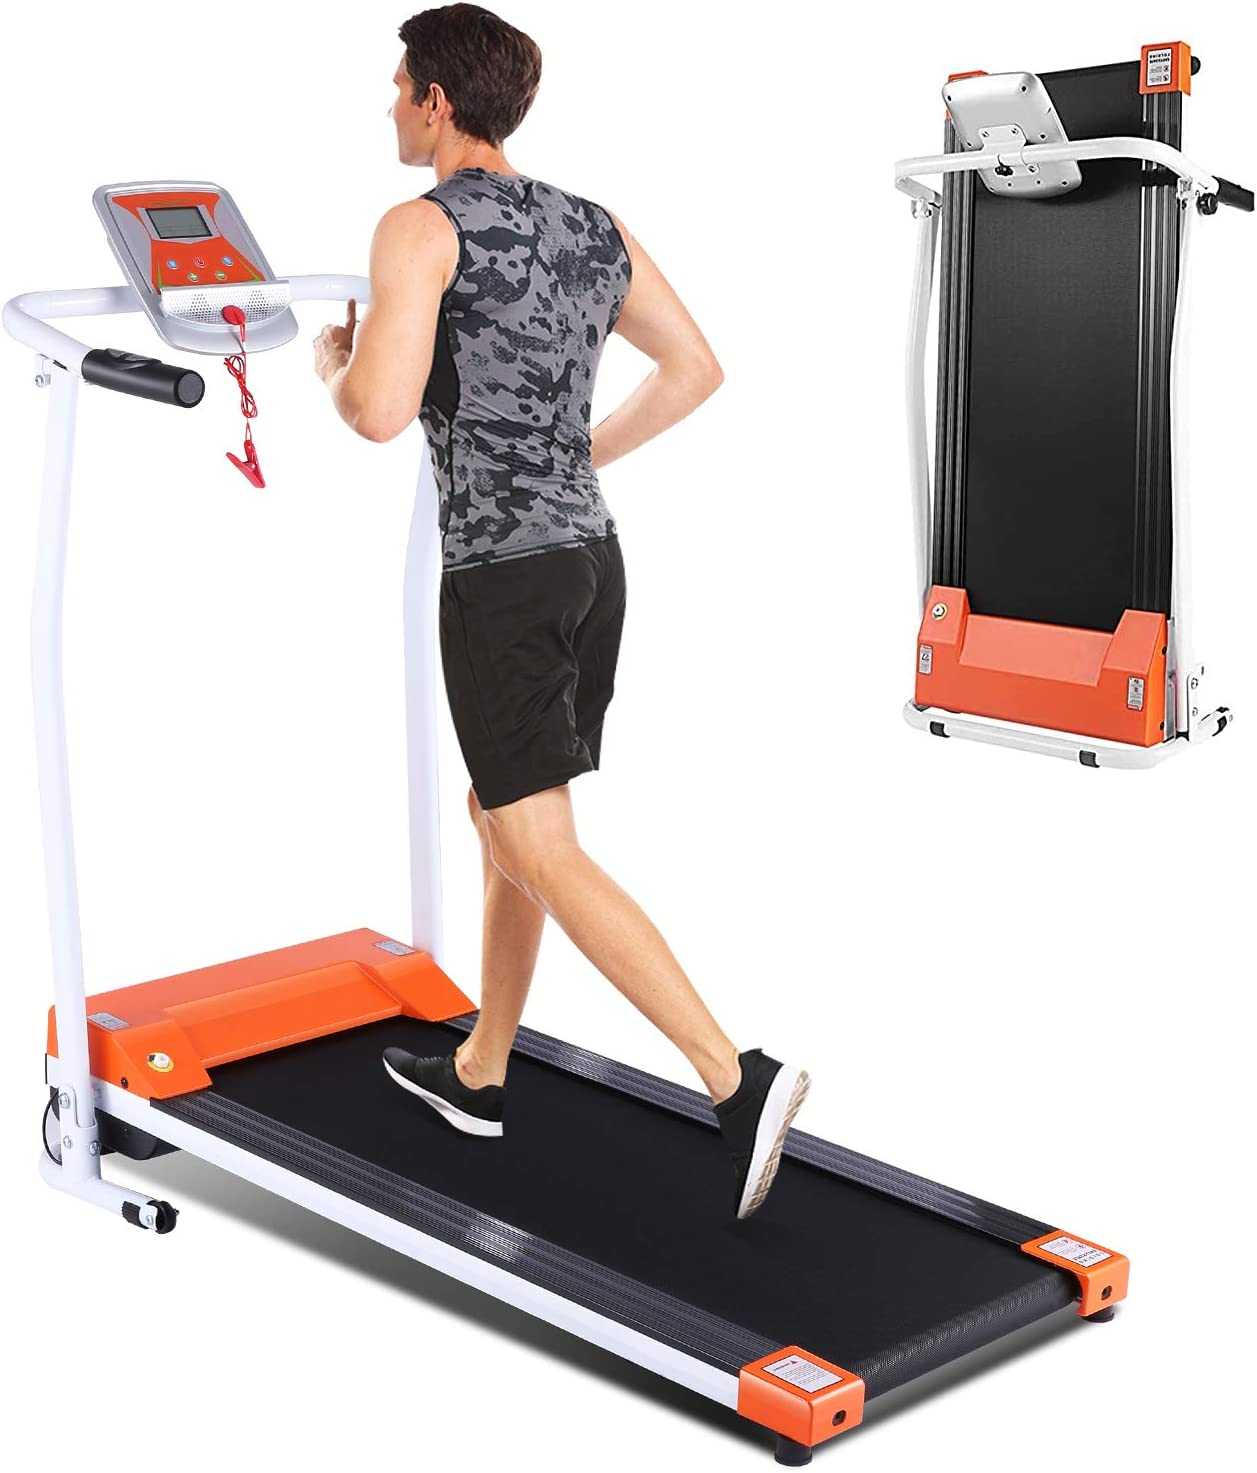 Folding Treadmill for Home, Portable Electric Treadmill Exercise Machine with LCD Display & Pulse Grip, Running Walking Jogging Exercise Fitness Machine for Home Gym Easy Assemble,Upgraded for 2020